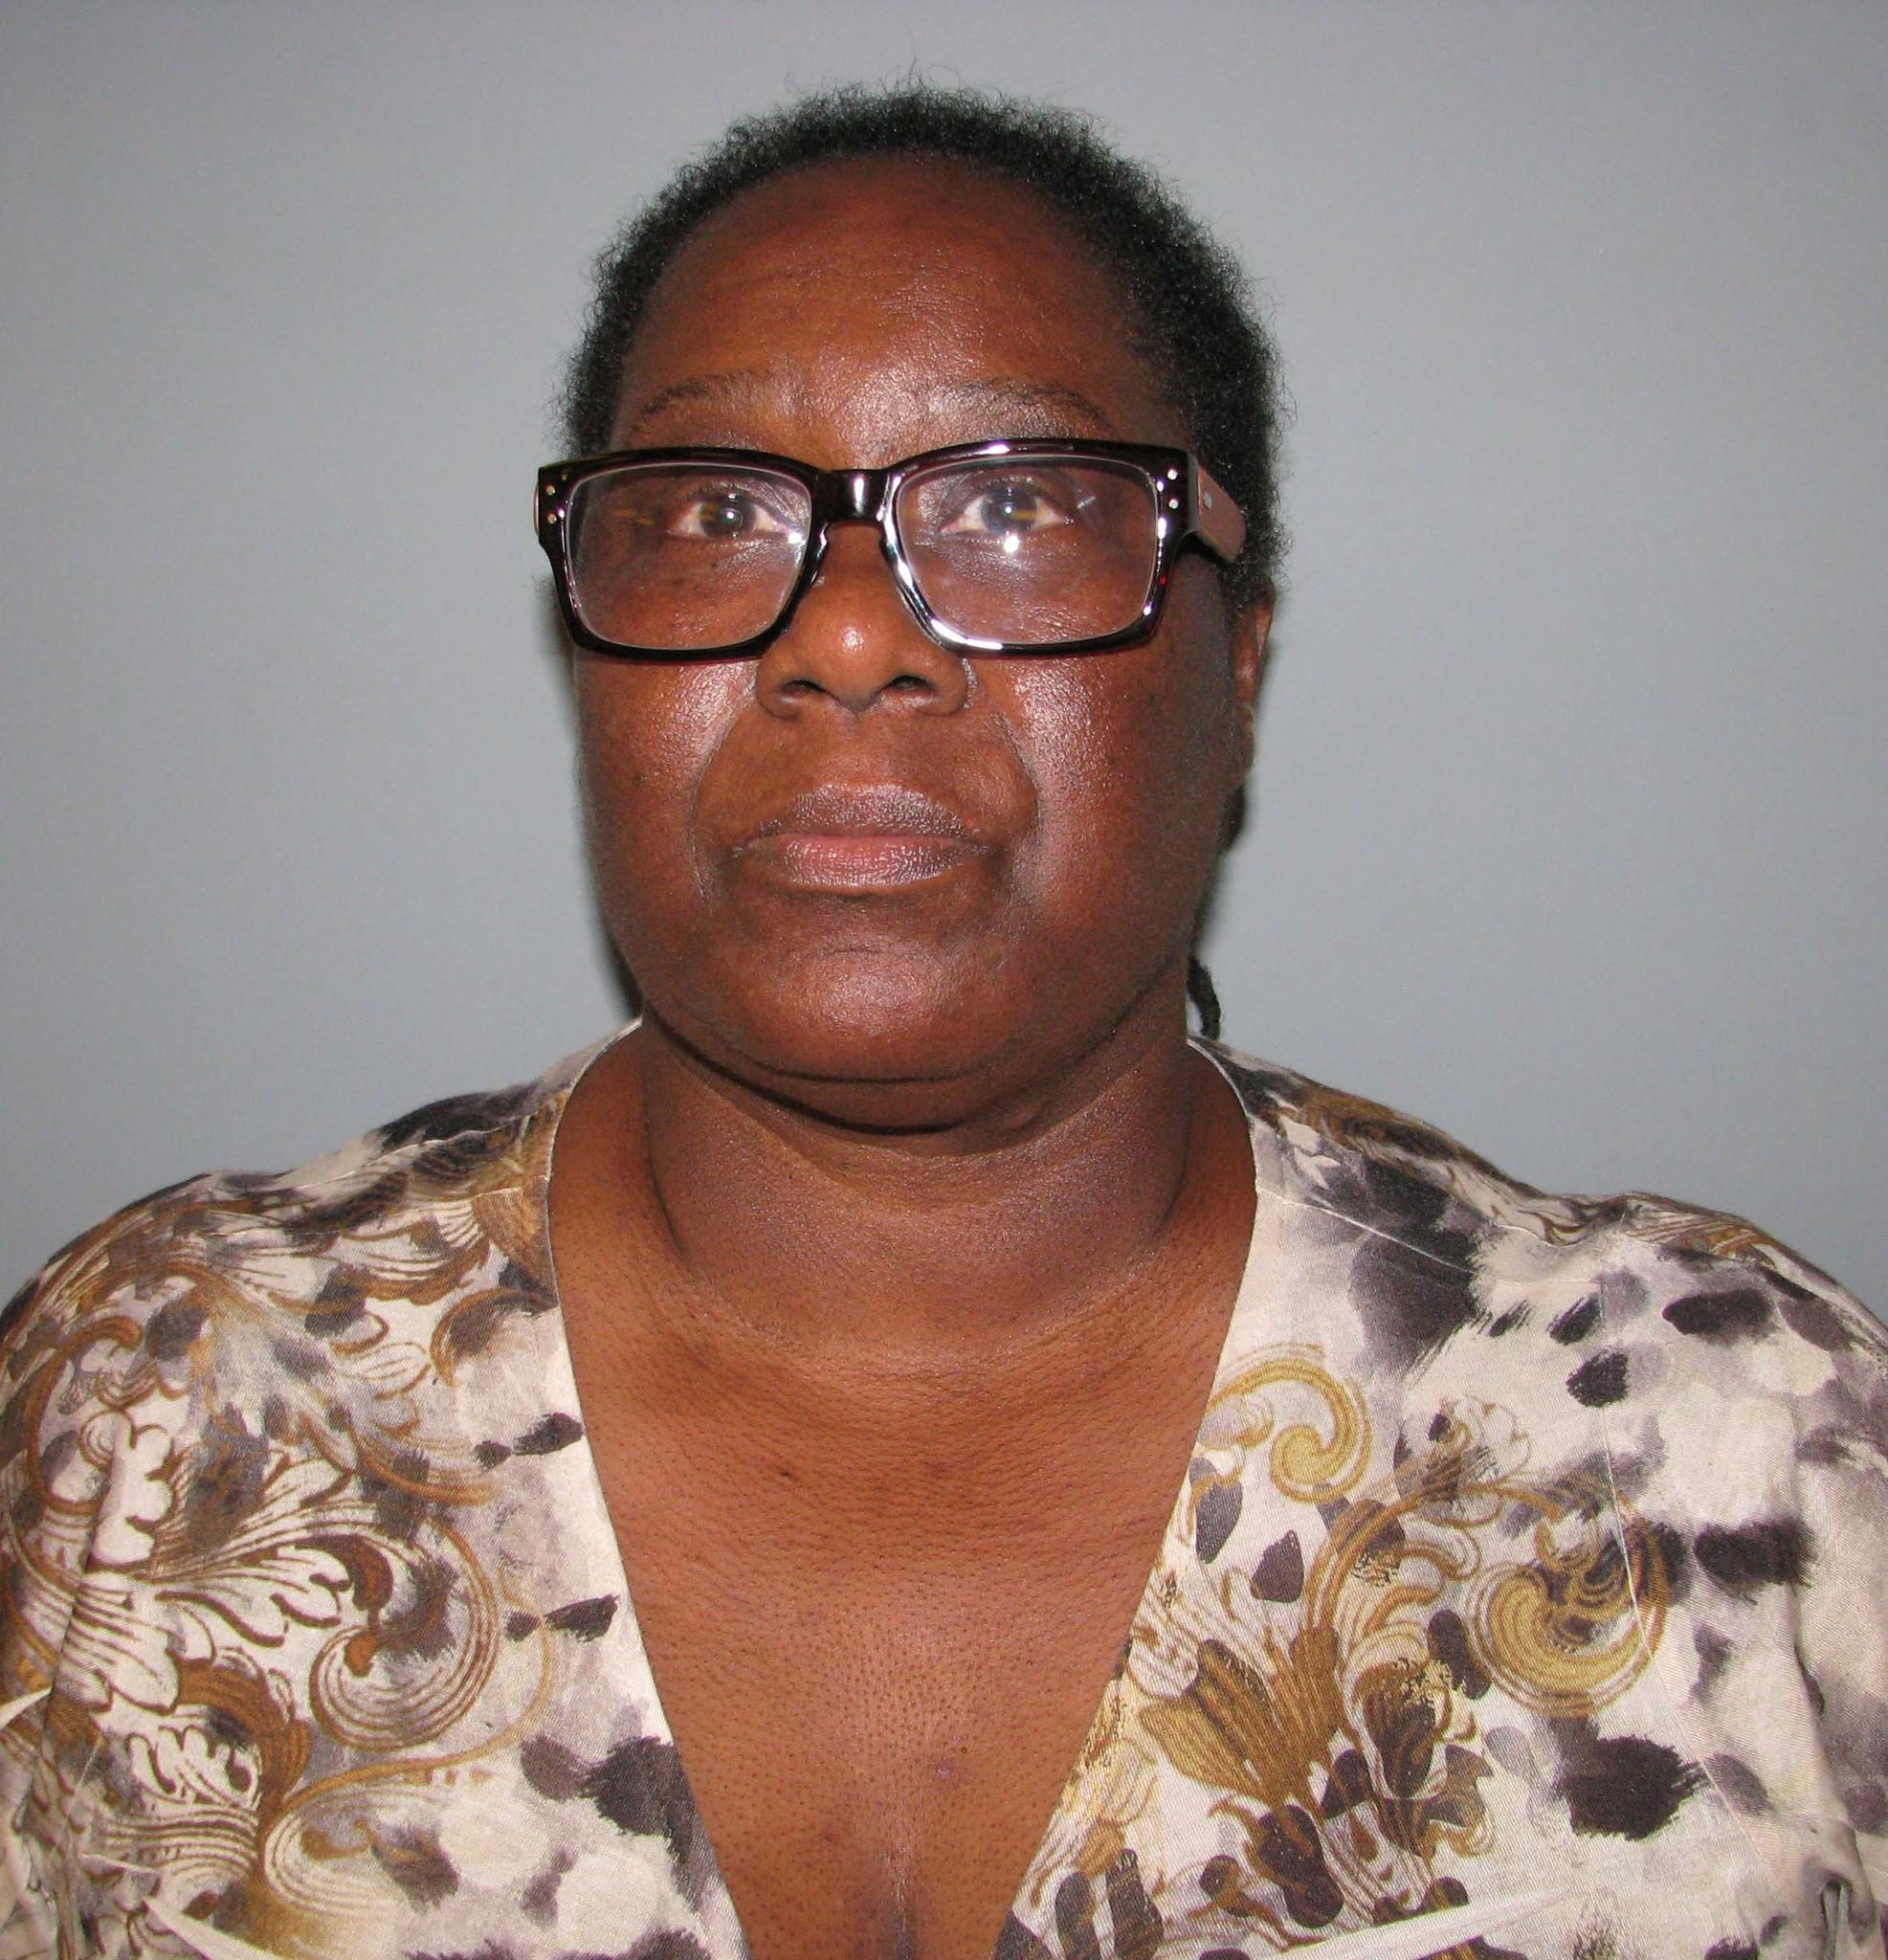 Karen O. Lewis, 57, was charged with first-degree larceny.